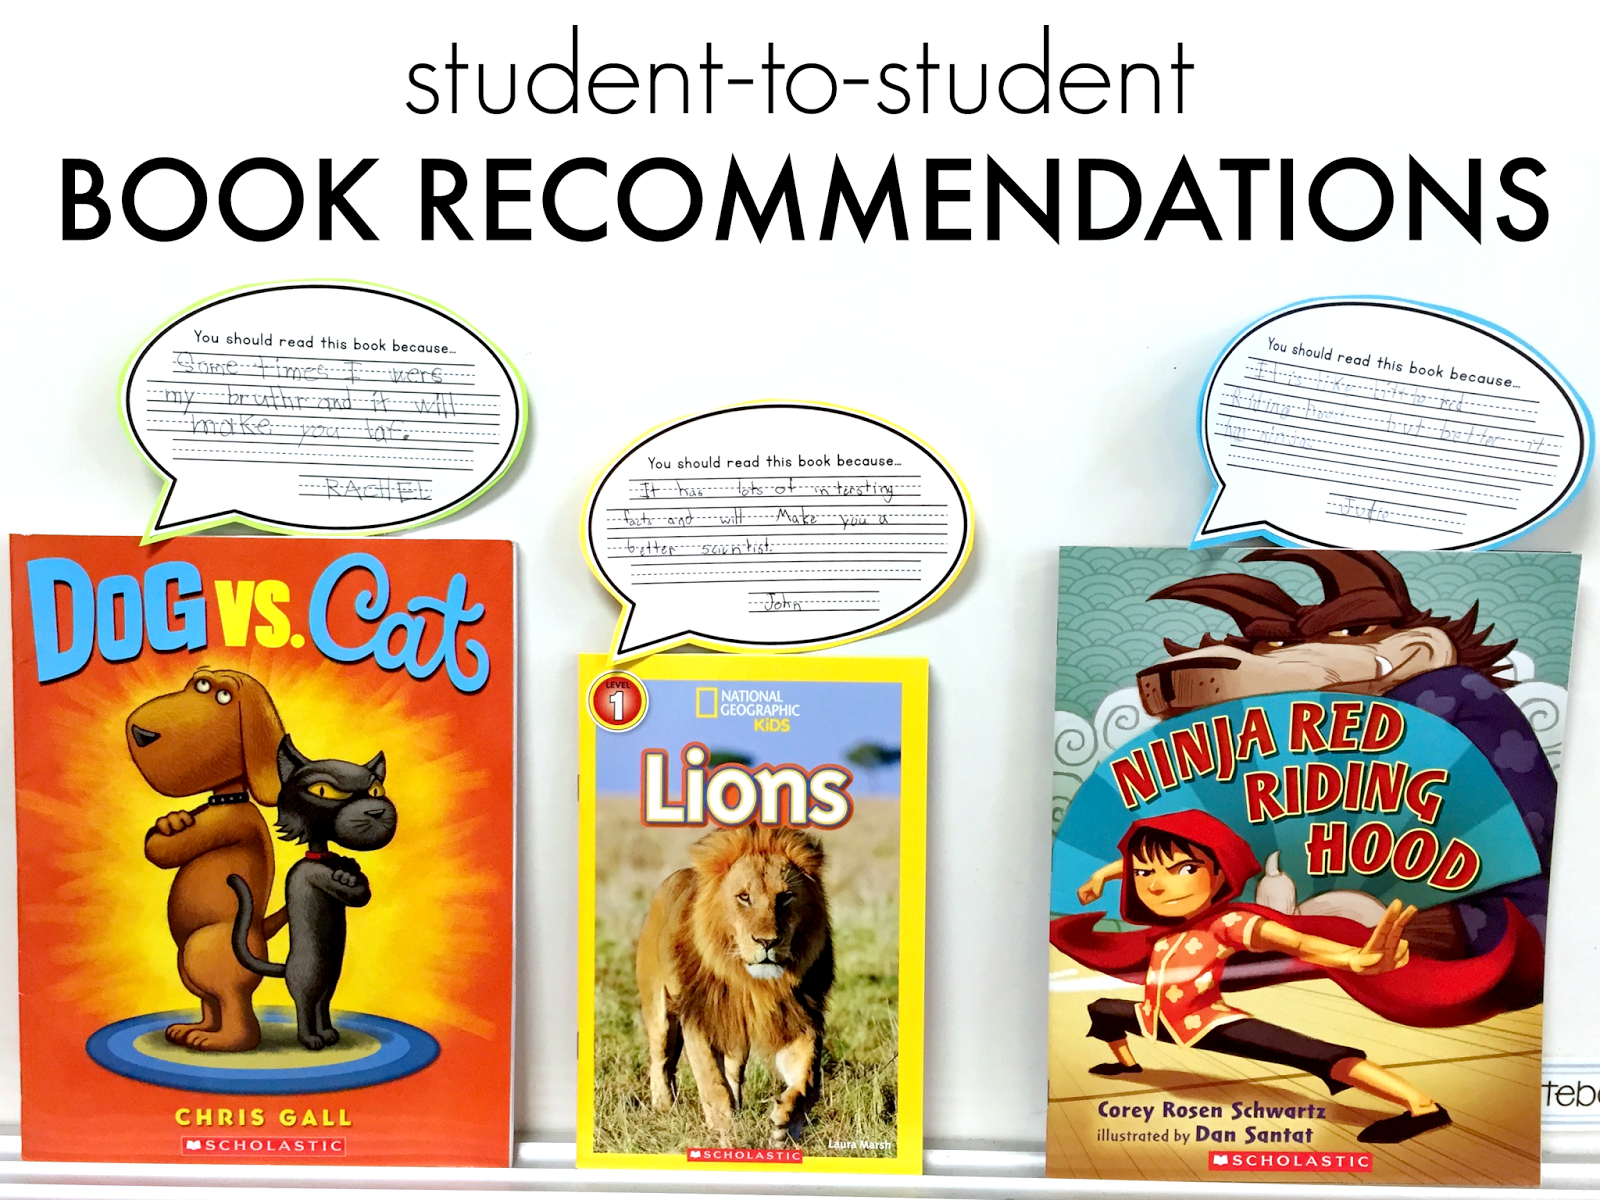 Getting Students To Suggest Books To Other Students Immediately Validates  The Recommendation Today I Wanted To Share One Way I Have Students Share  Their